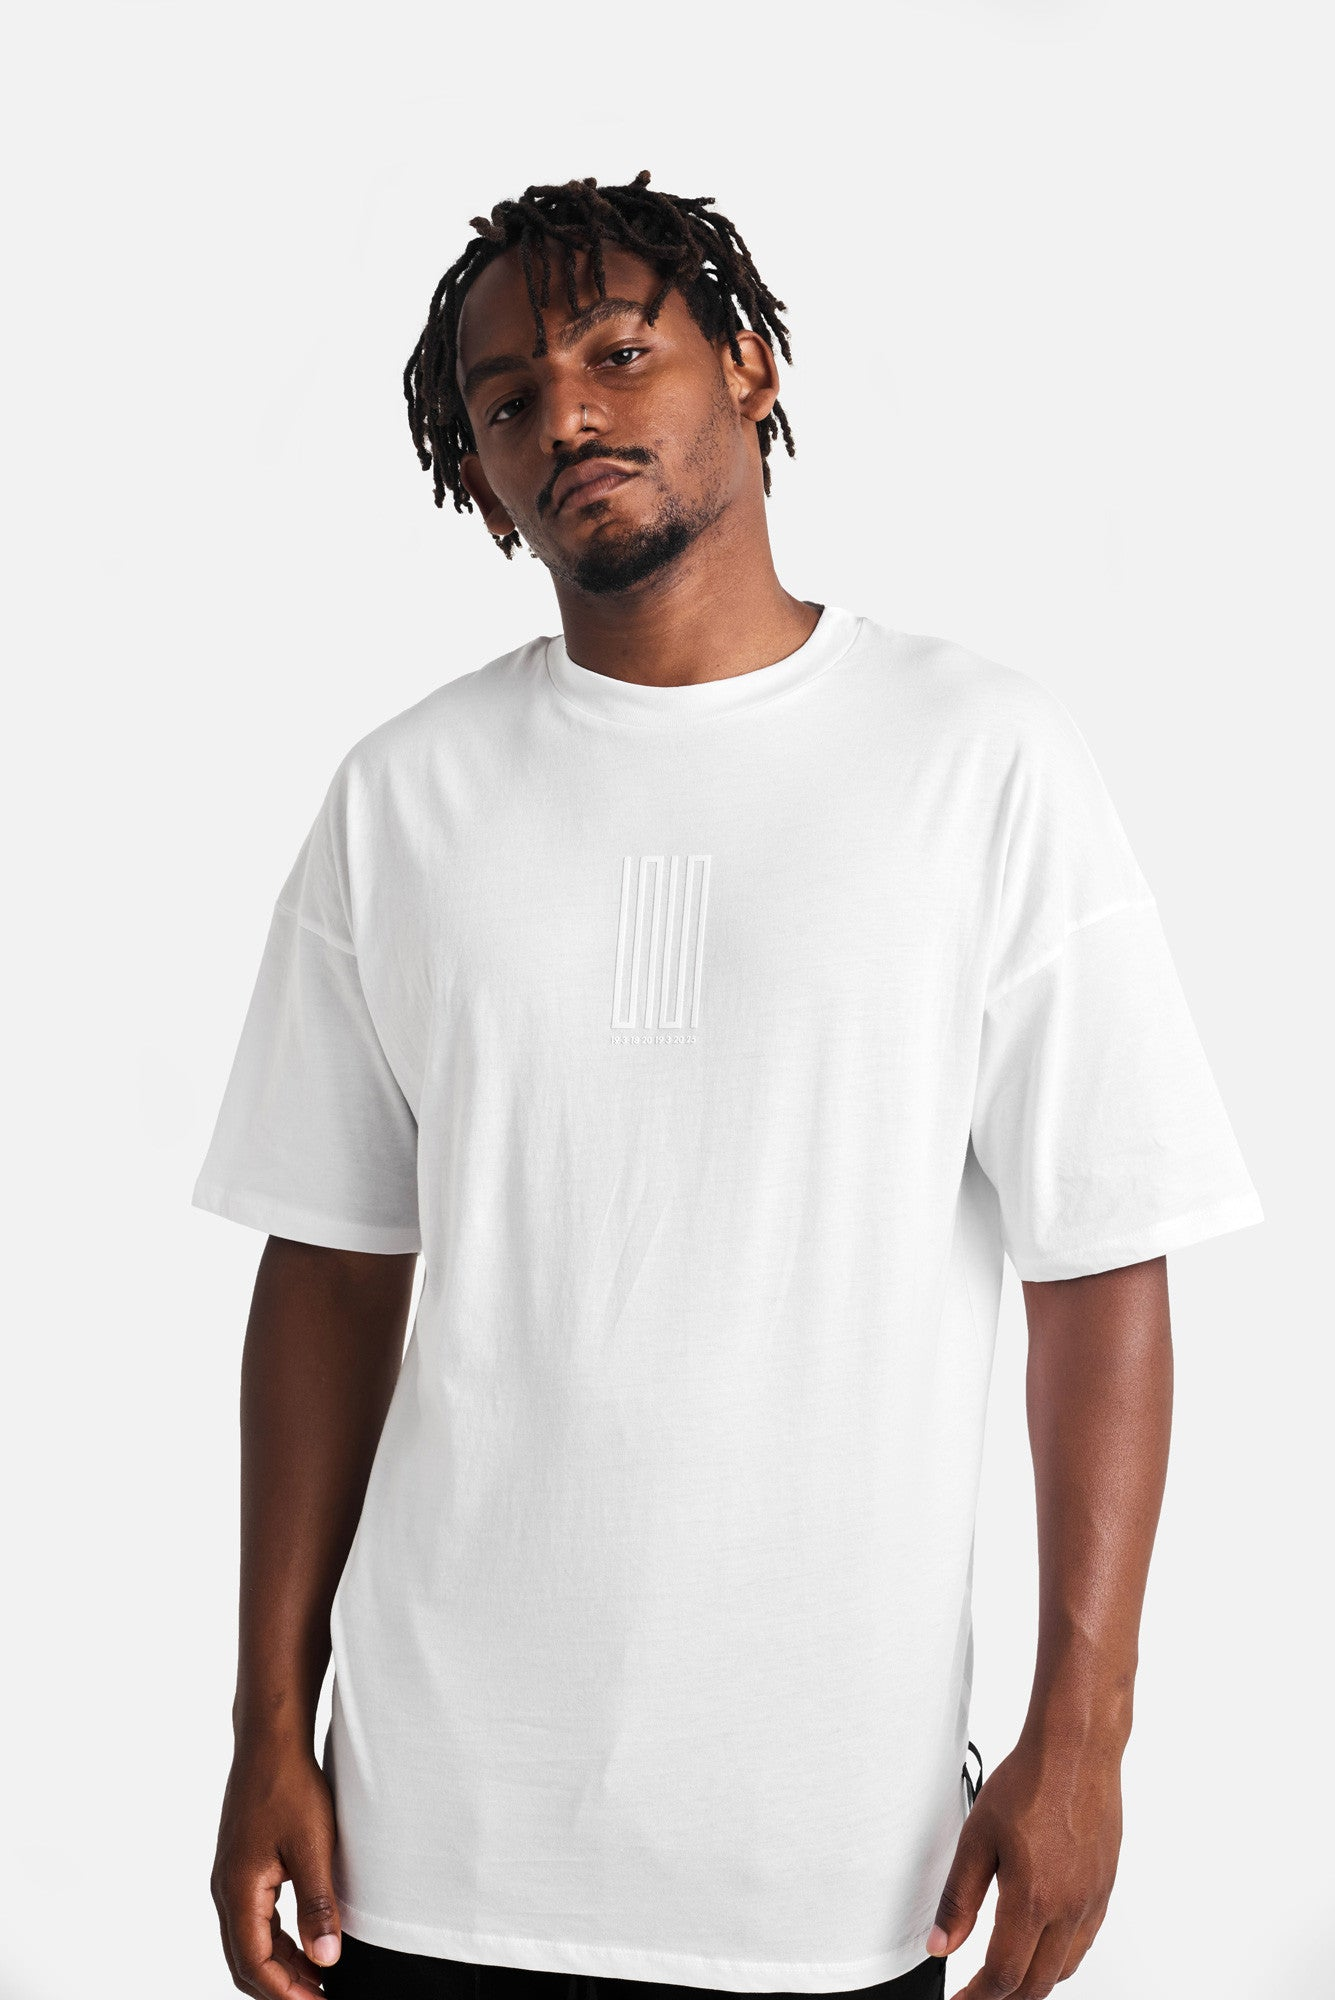 shatto article 1 logo tee - scrt society